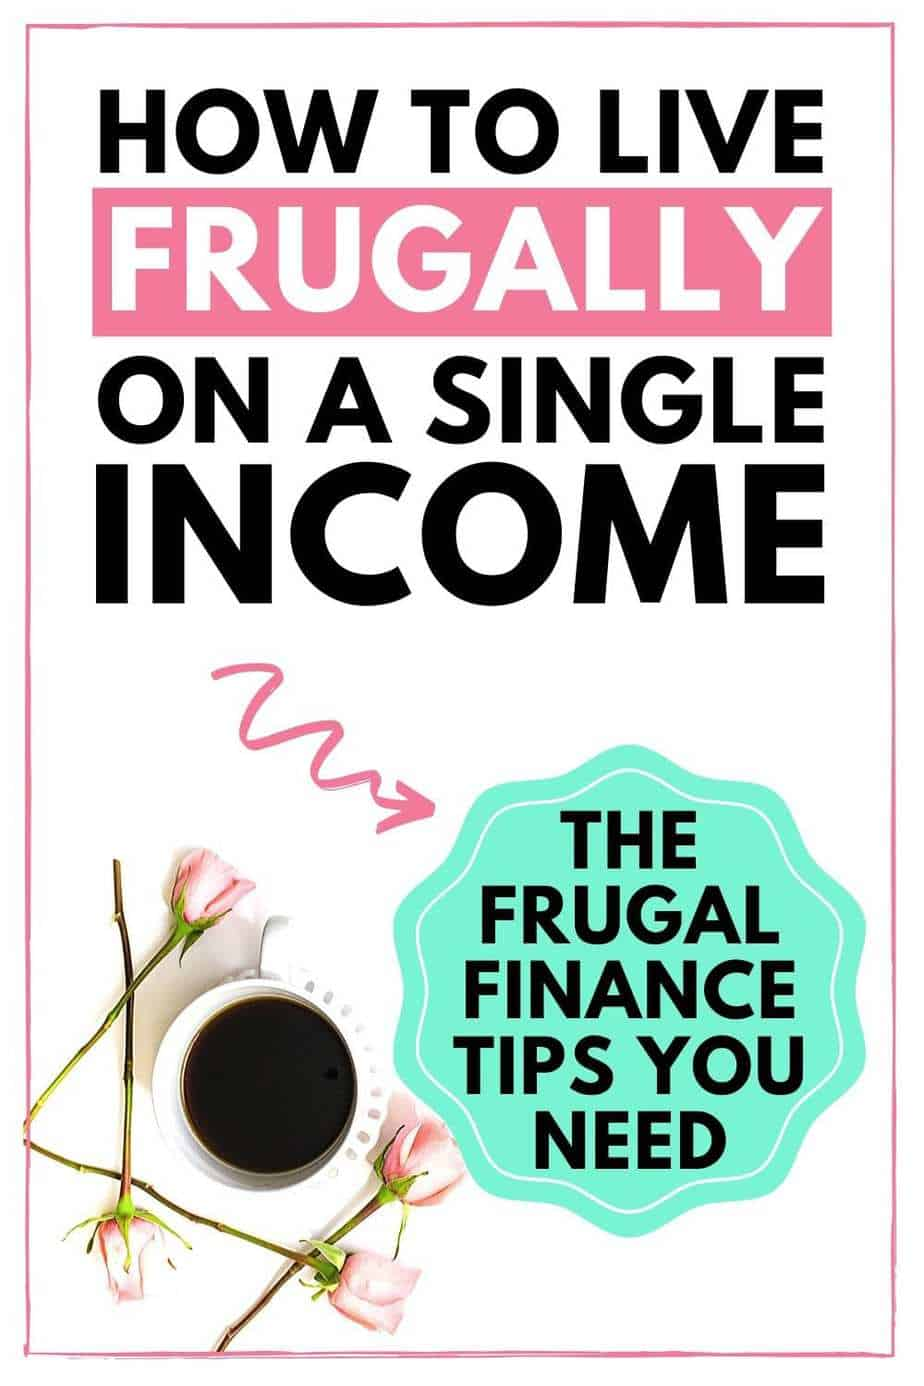 How to live frugally on a single income